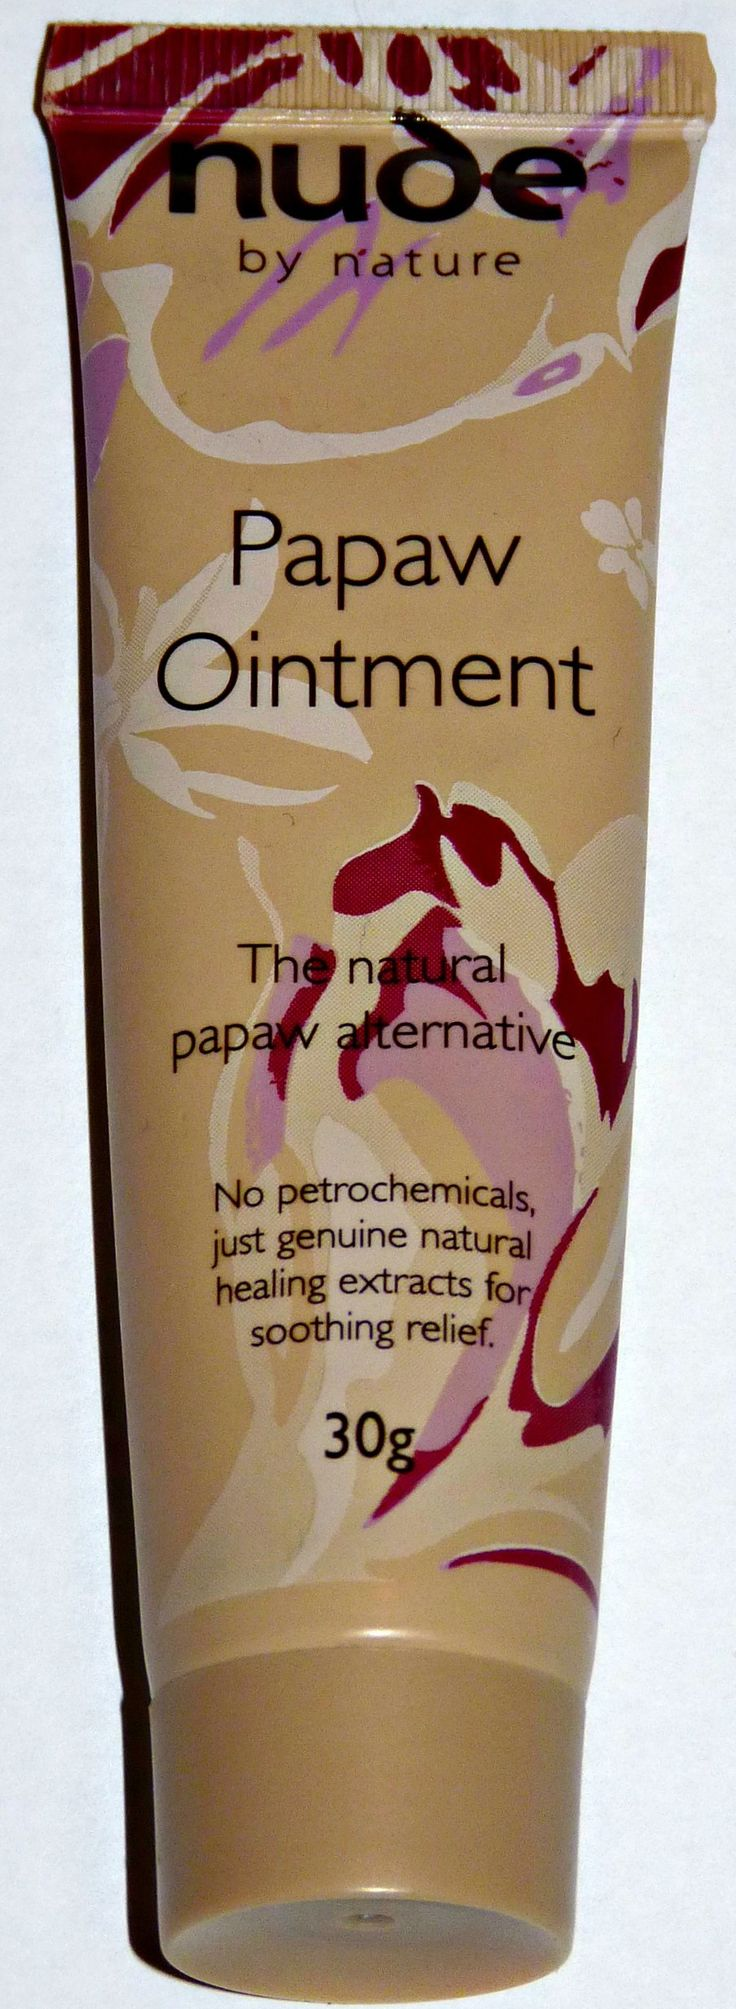 Nude by Nature Papaw Ointment review